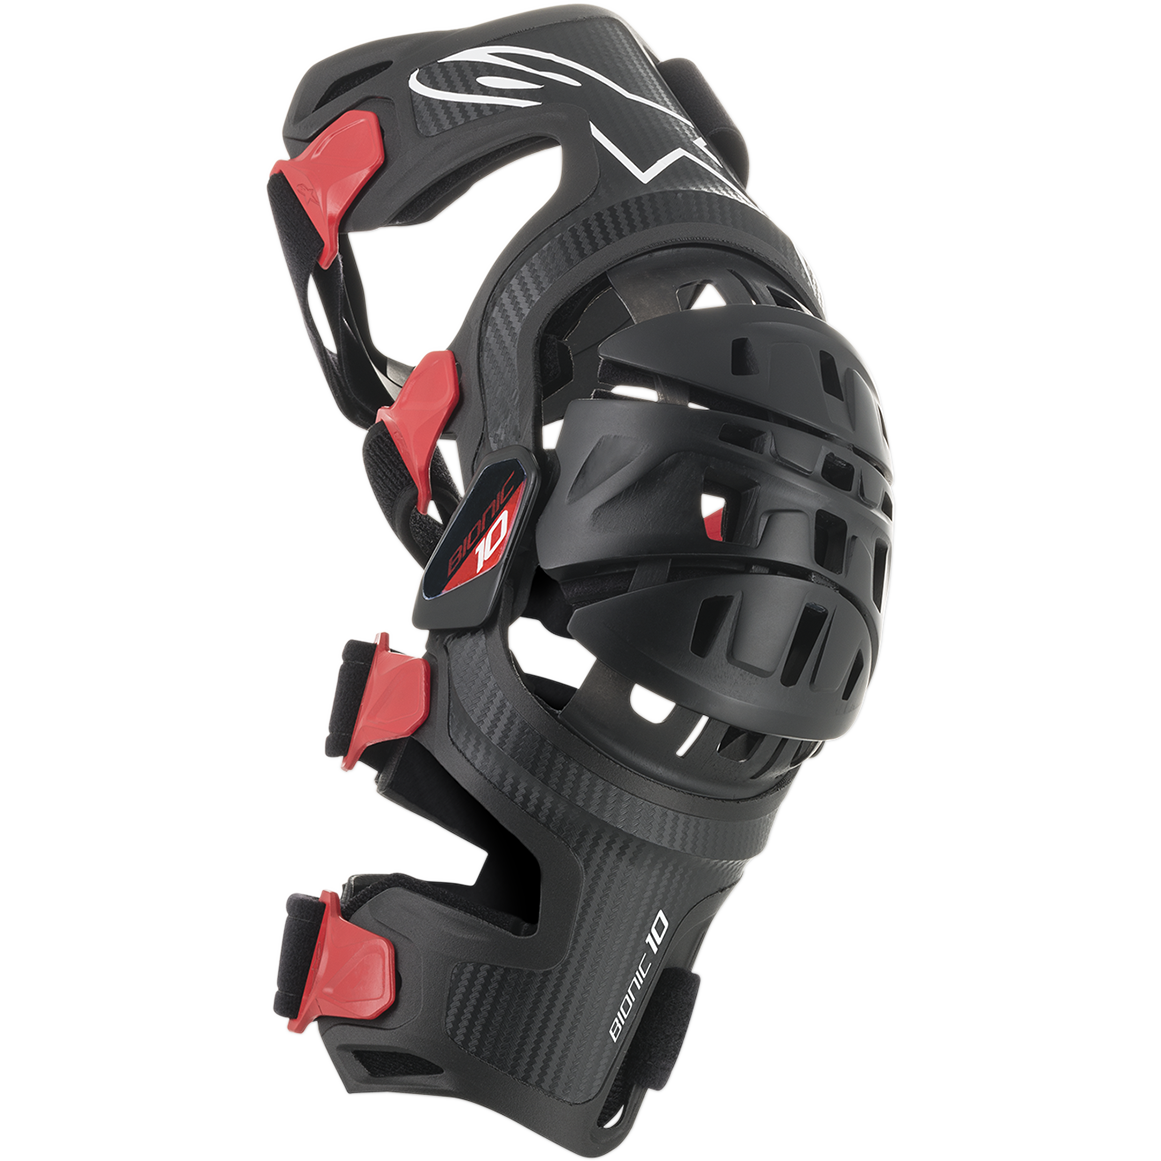 Bionic-10 Carbon Knee Brace — Set